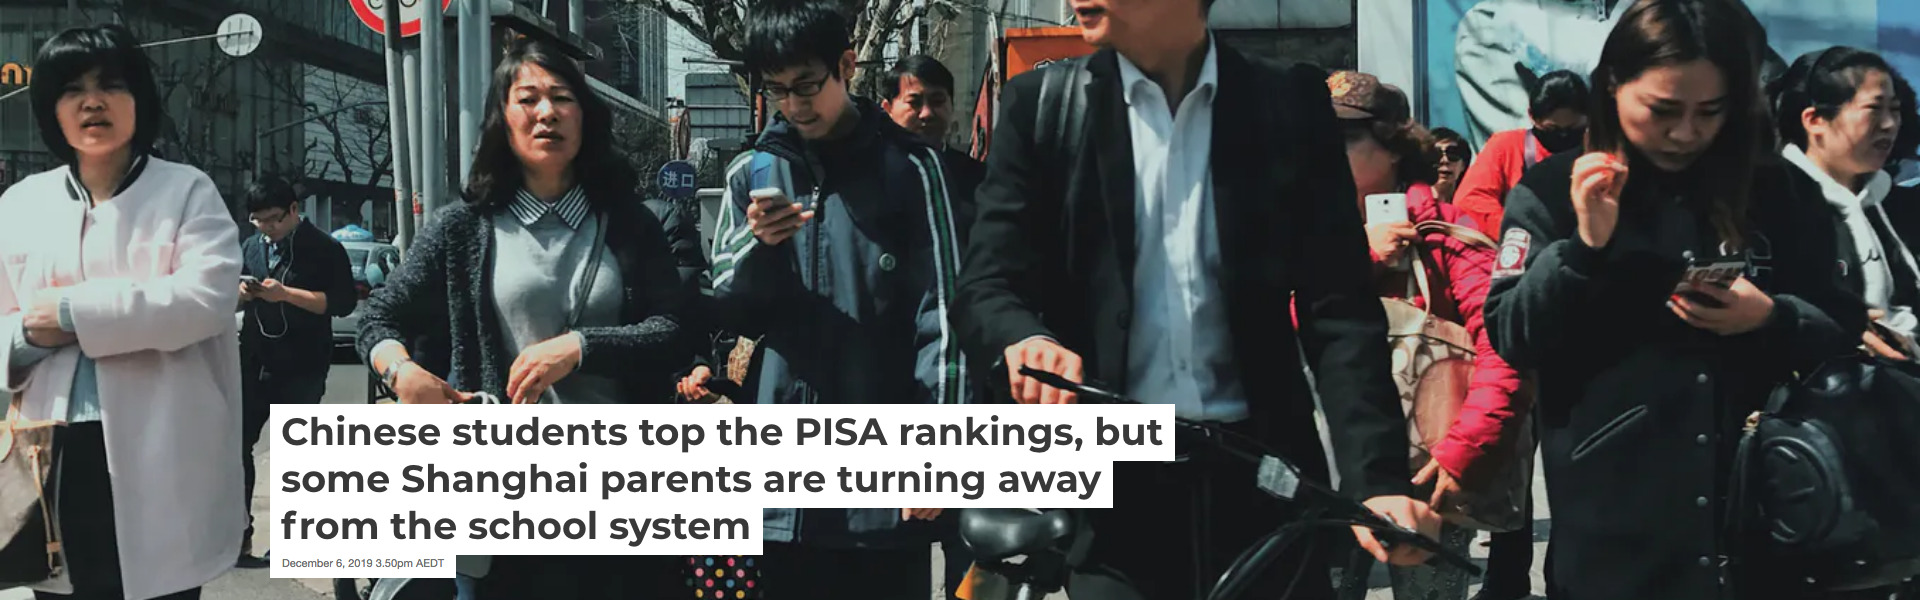 Screenshot_2019-12-08 Chinese students top the PISA rankings, but some Shanghai parents are turning away from the school sy[...].jpg